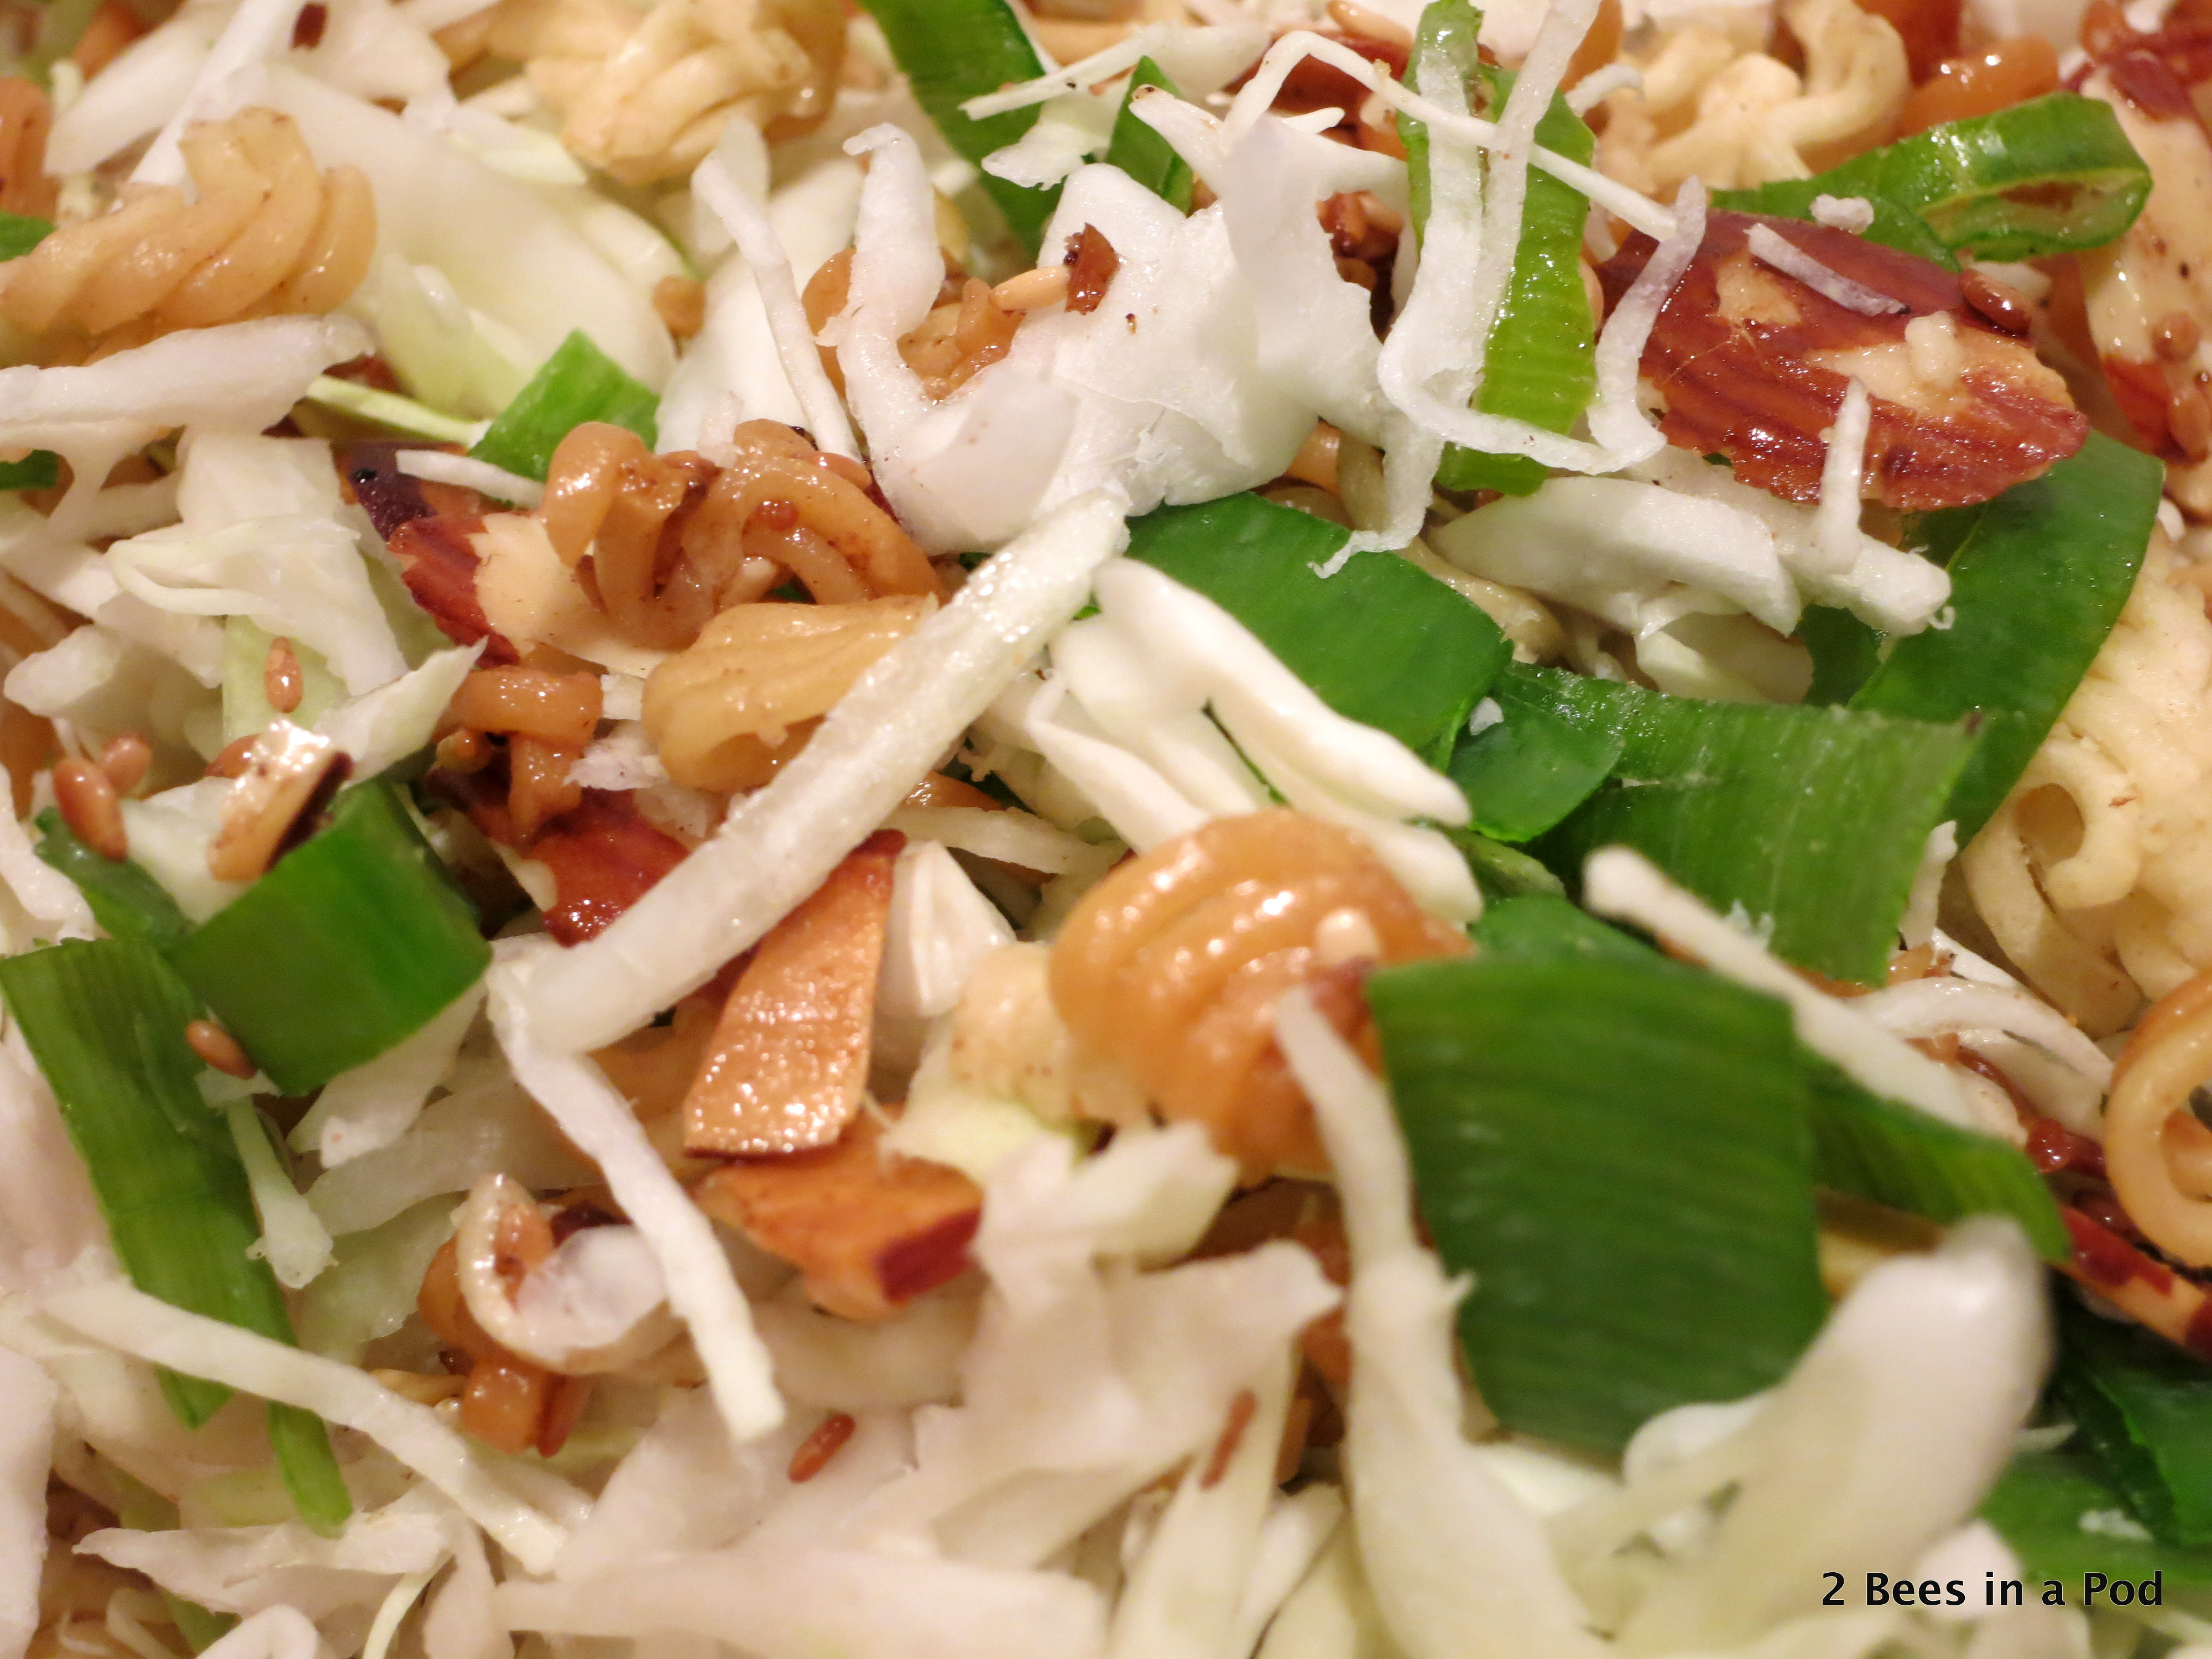 Fumi Salad - toasted almonds, sesame seeds, ramen noodles, cabbage, green onions, and asian dressing with rice vinegar, soy sauce & sugar